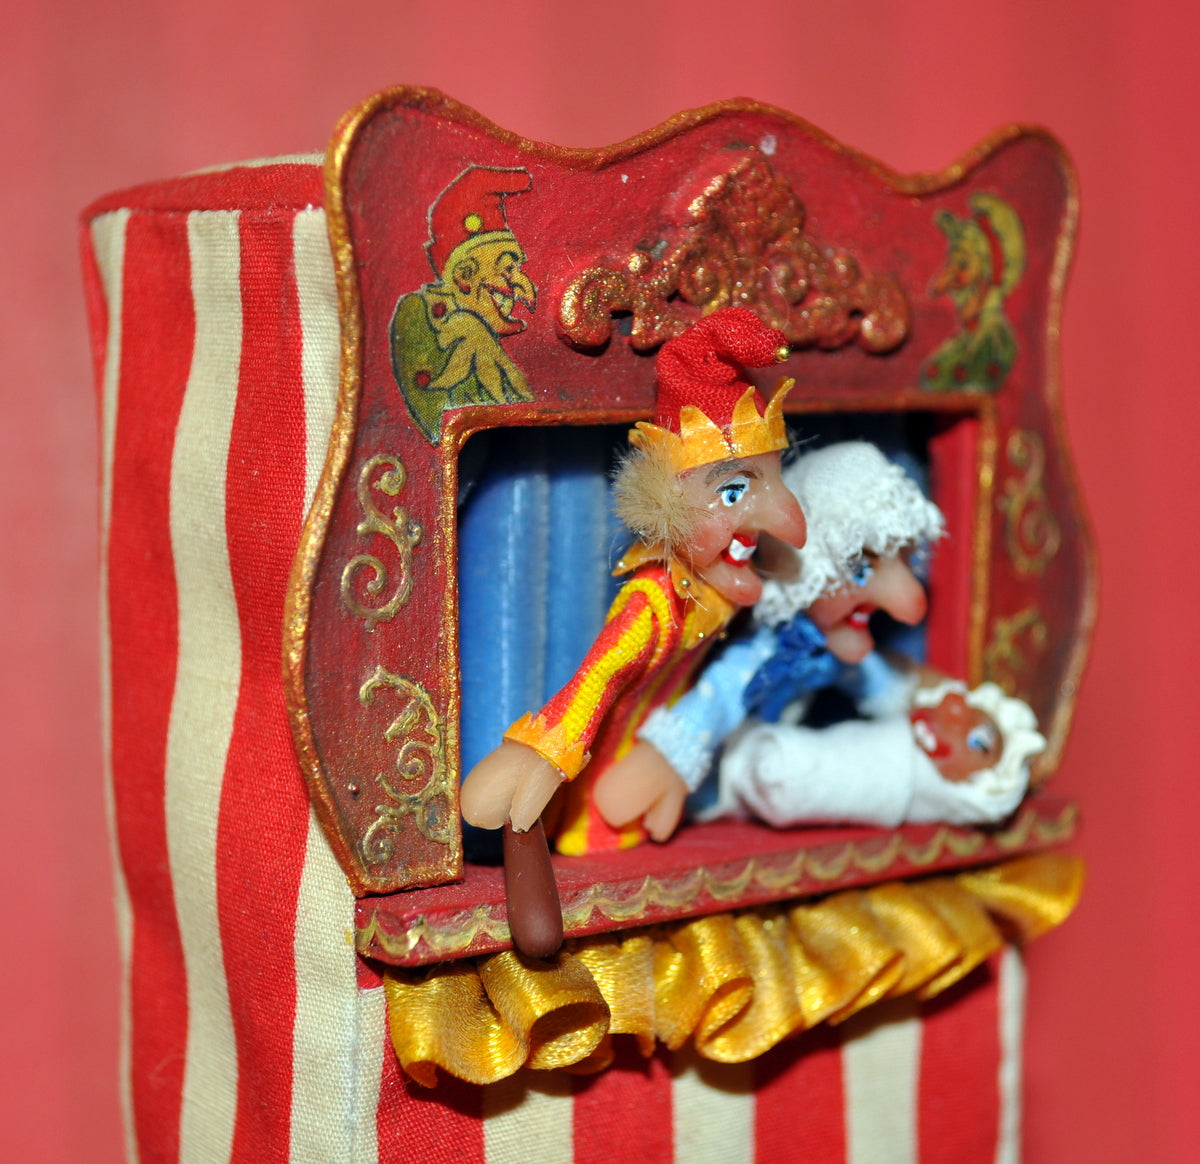 Punch & Judy Puppet Theatre II by Rika Moon